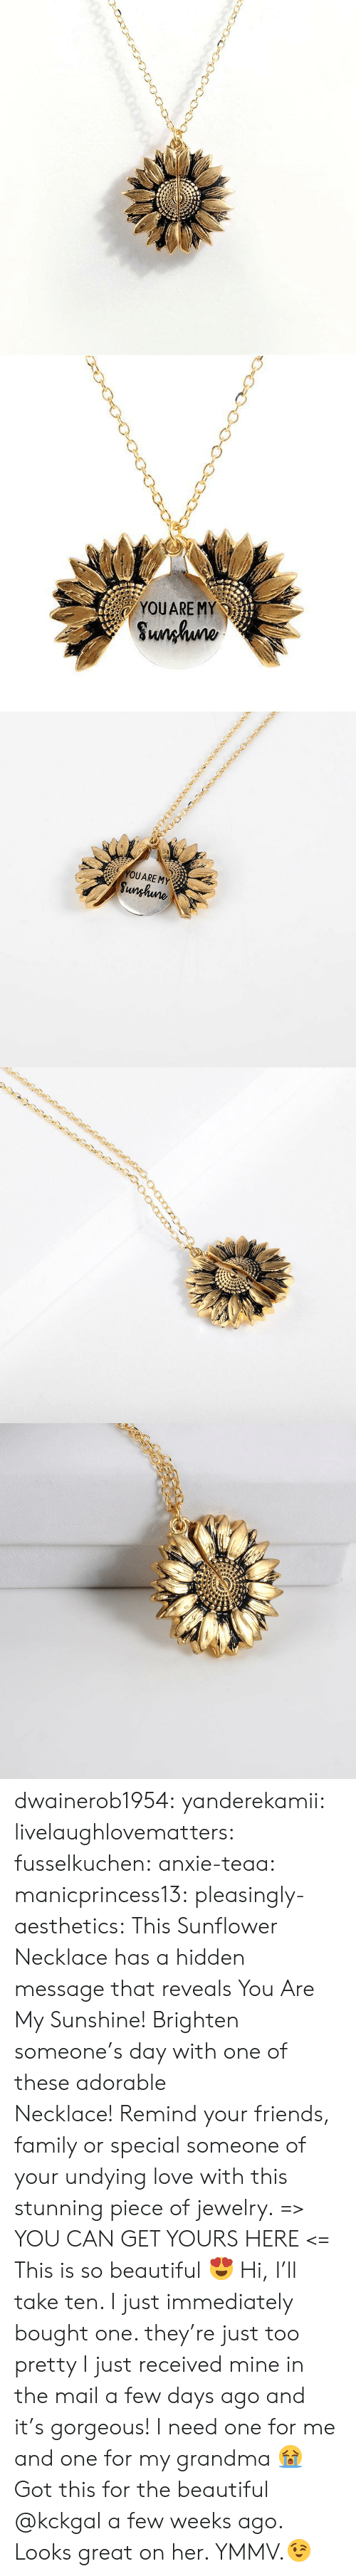 The Mail: YOUARE MY  Sunhuno   YOUARE MY  Sunghune dwainerob1954:  yanderekamii:  livelaughlovematters:  fusselkuchen: anxie-teaa:   manicprincess13:   pleasingly-aesthetics:  This Sunflower Necklace has a hidden message that reveals You Are My Sunshine! Brighten someone's day with one of these adorable Necklace! Remind your friends, family or special someone of your undying love with this stunning piece of jewelry. => YOU CAN GET YOURS HERE <=   This is so beautiful 😍    Hi, I'll take ten.    I just immediately bought one. they're just too pretty   I just received mine in the mail a few days ago and it's gorgeous!  I need one for me and one for my grandma 😭  Got this for the beautiful @kckgal a few weeks ago.  Looks great on her. YMMV.😉